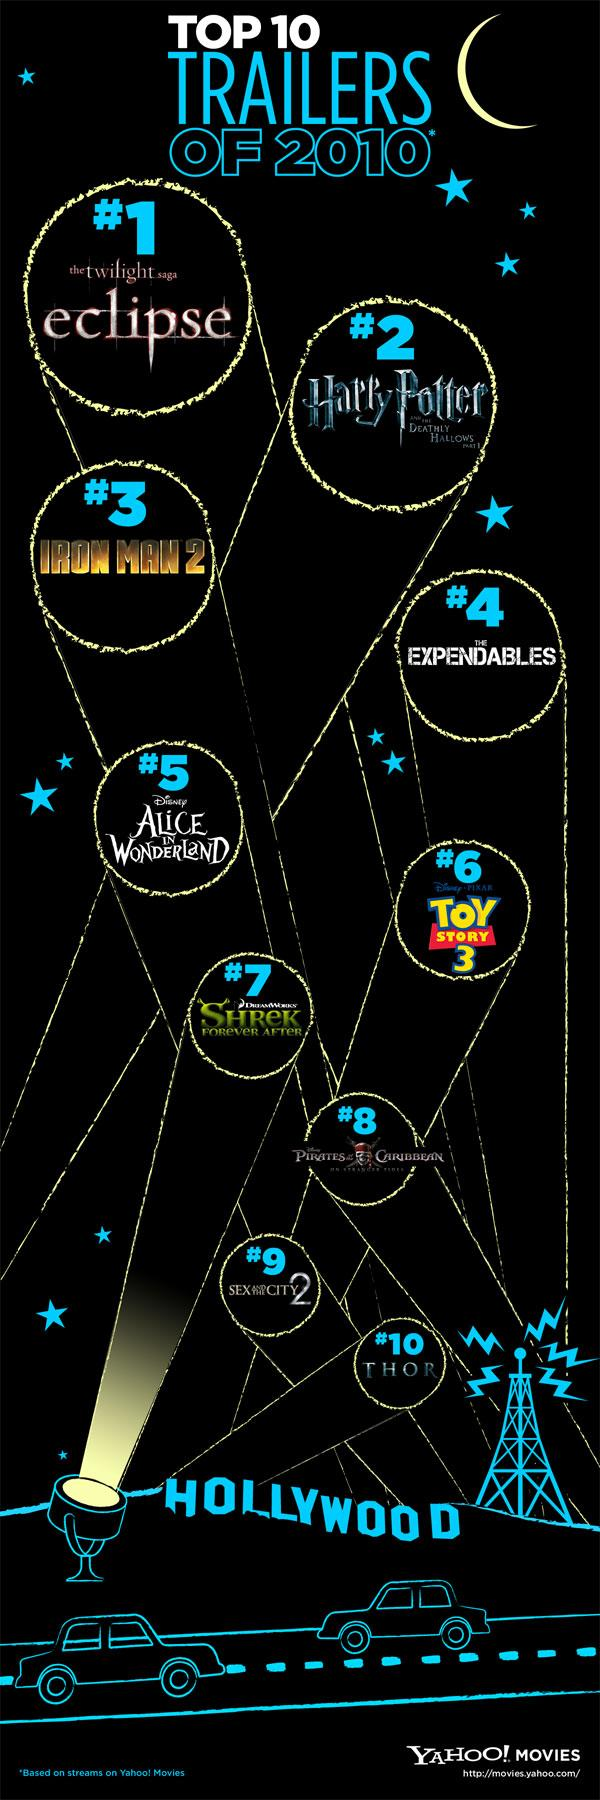 Top Trailers Infographic